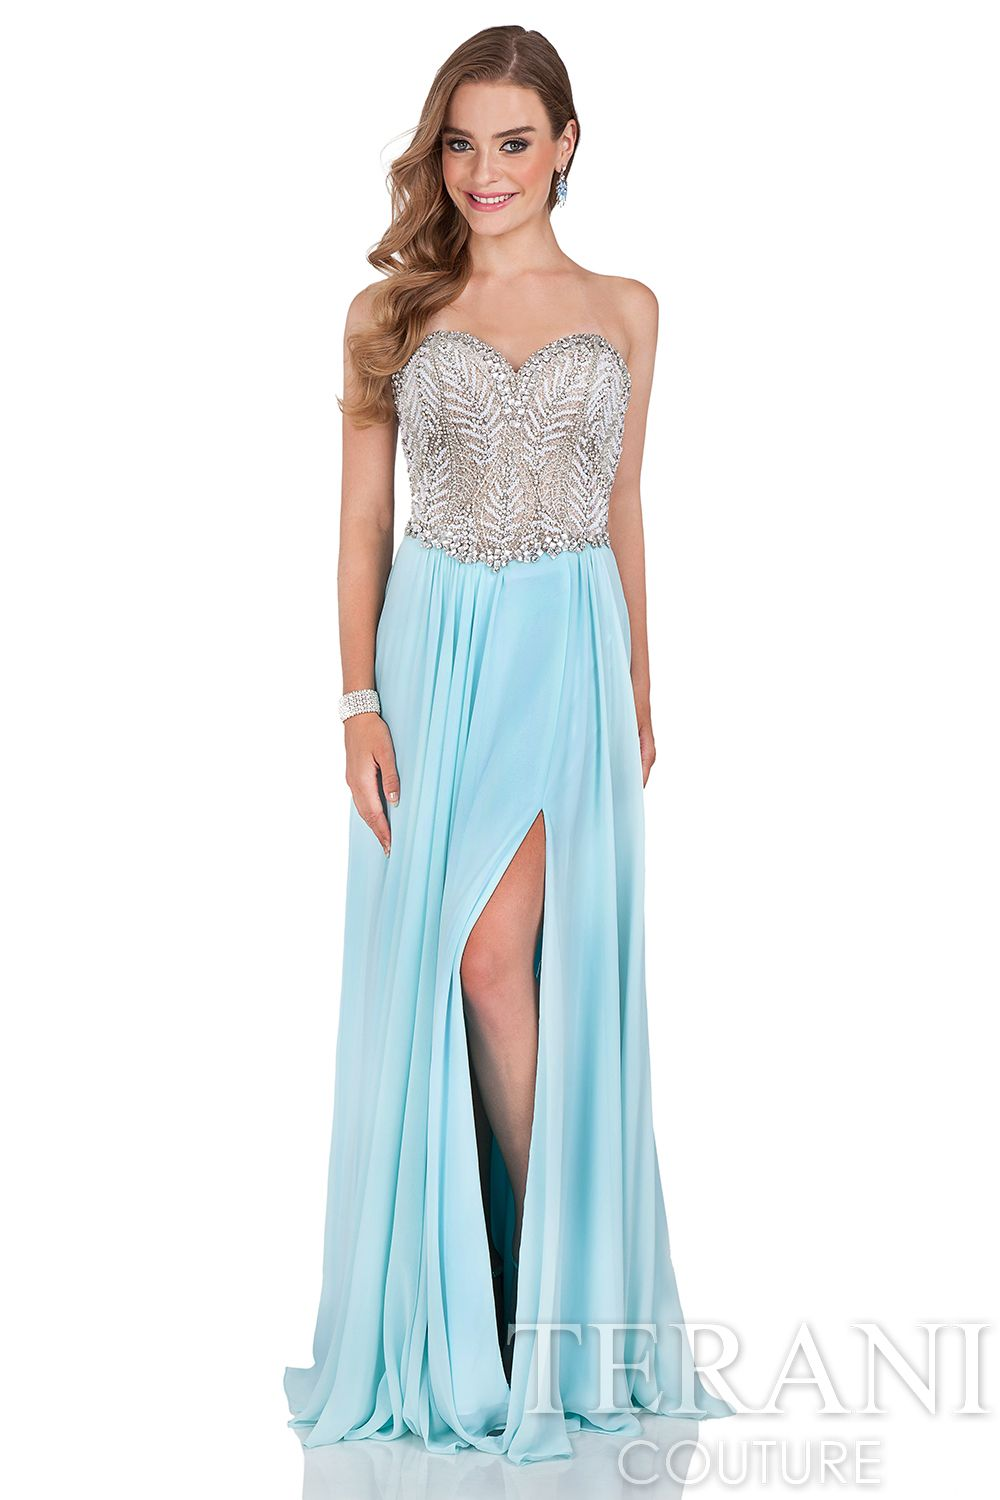 Sweetheart prom gown with crystal embellished bodice. This prom ...